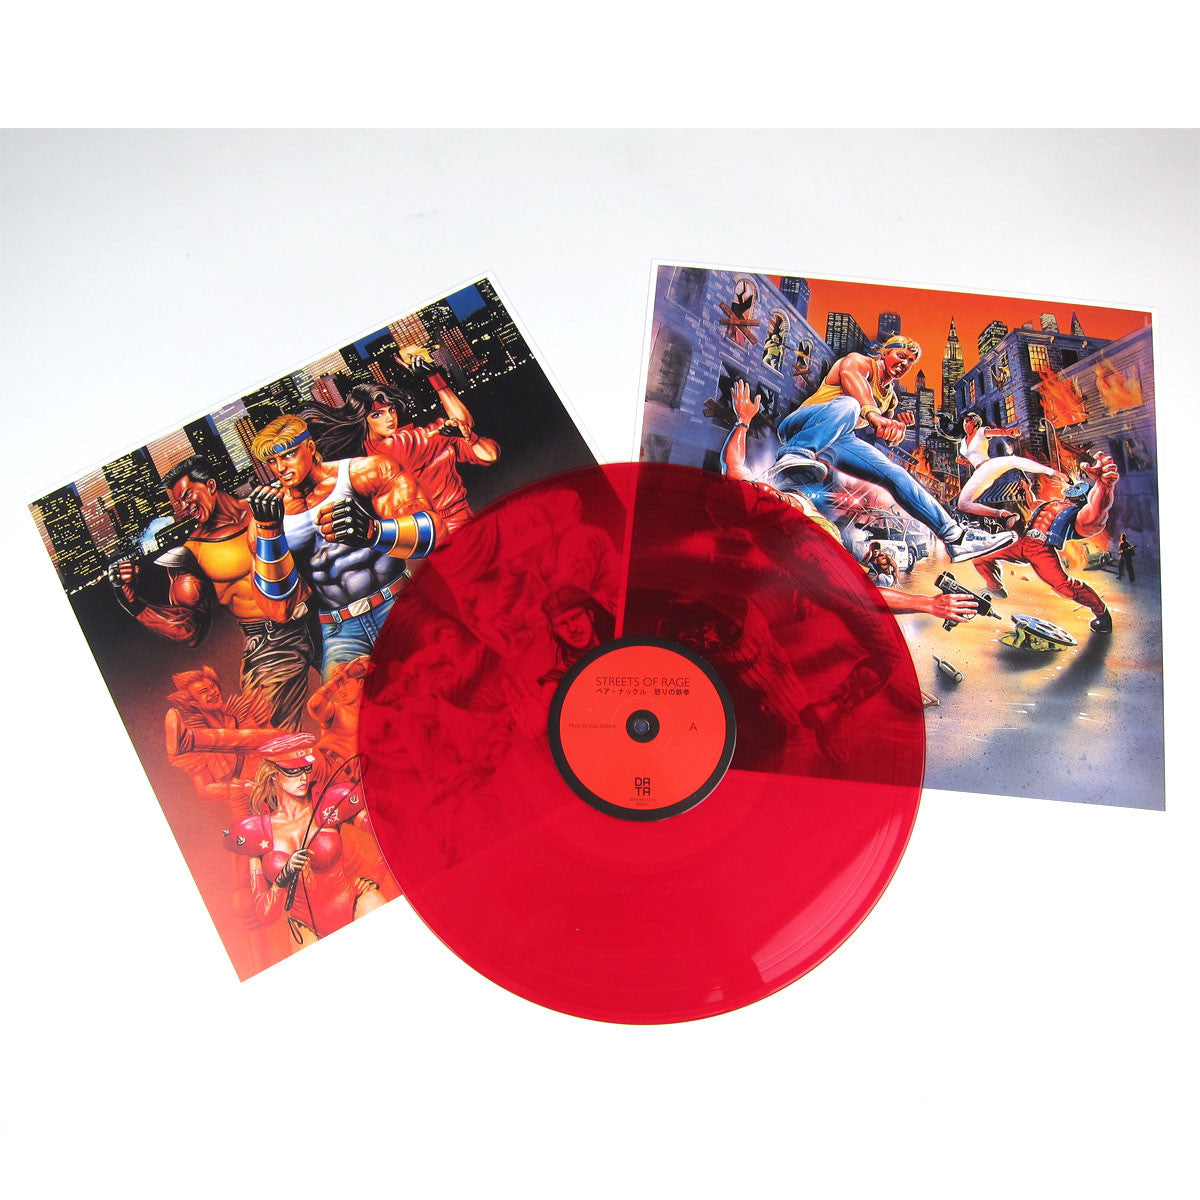 Yuzo Koshiro: Streets Of Rage Original Soundtrack (Colored Vinyl, 180g) Vinyl LP